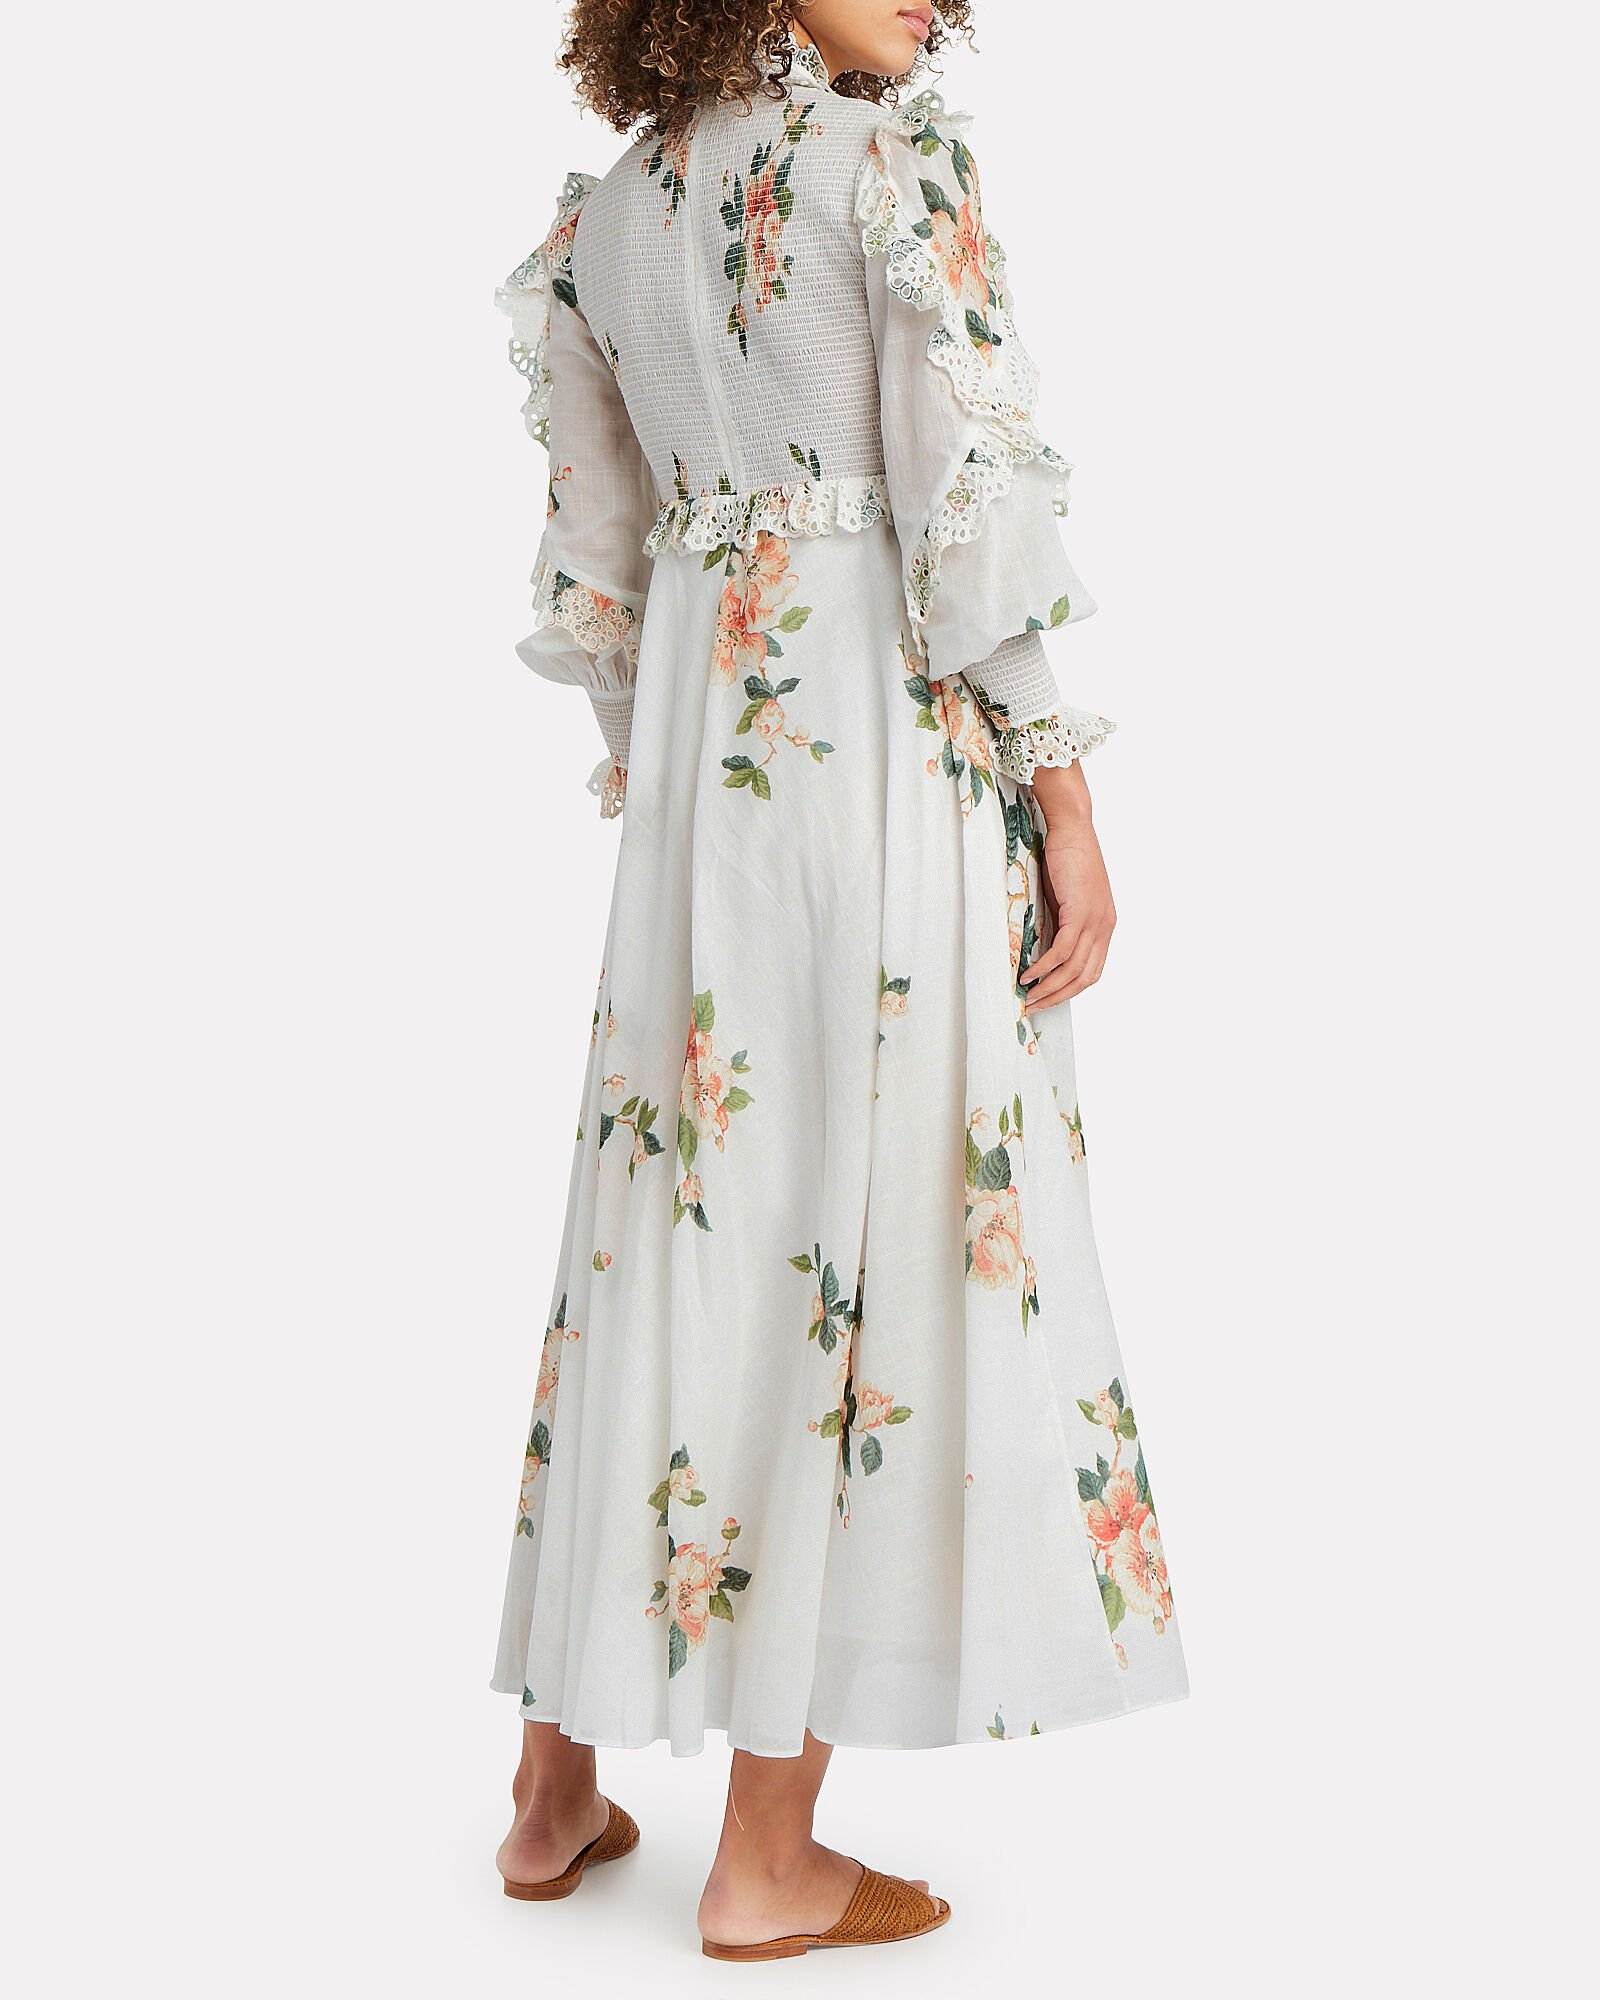 Kirra Shirred Floral Dress, IVORY, hi-res